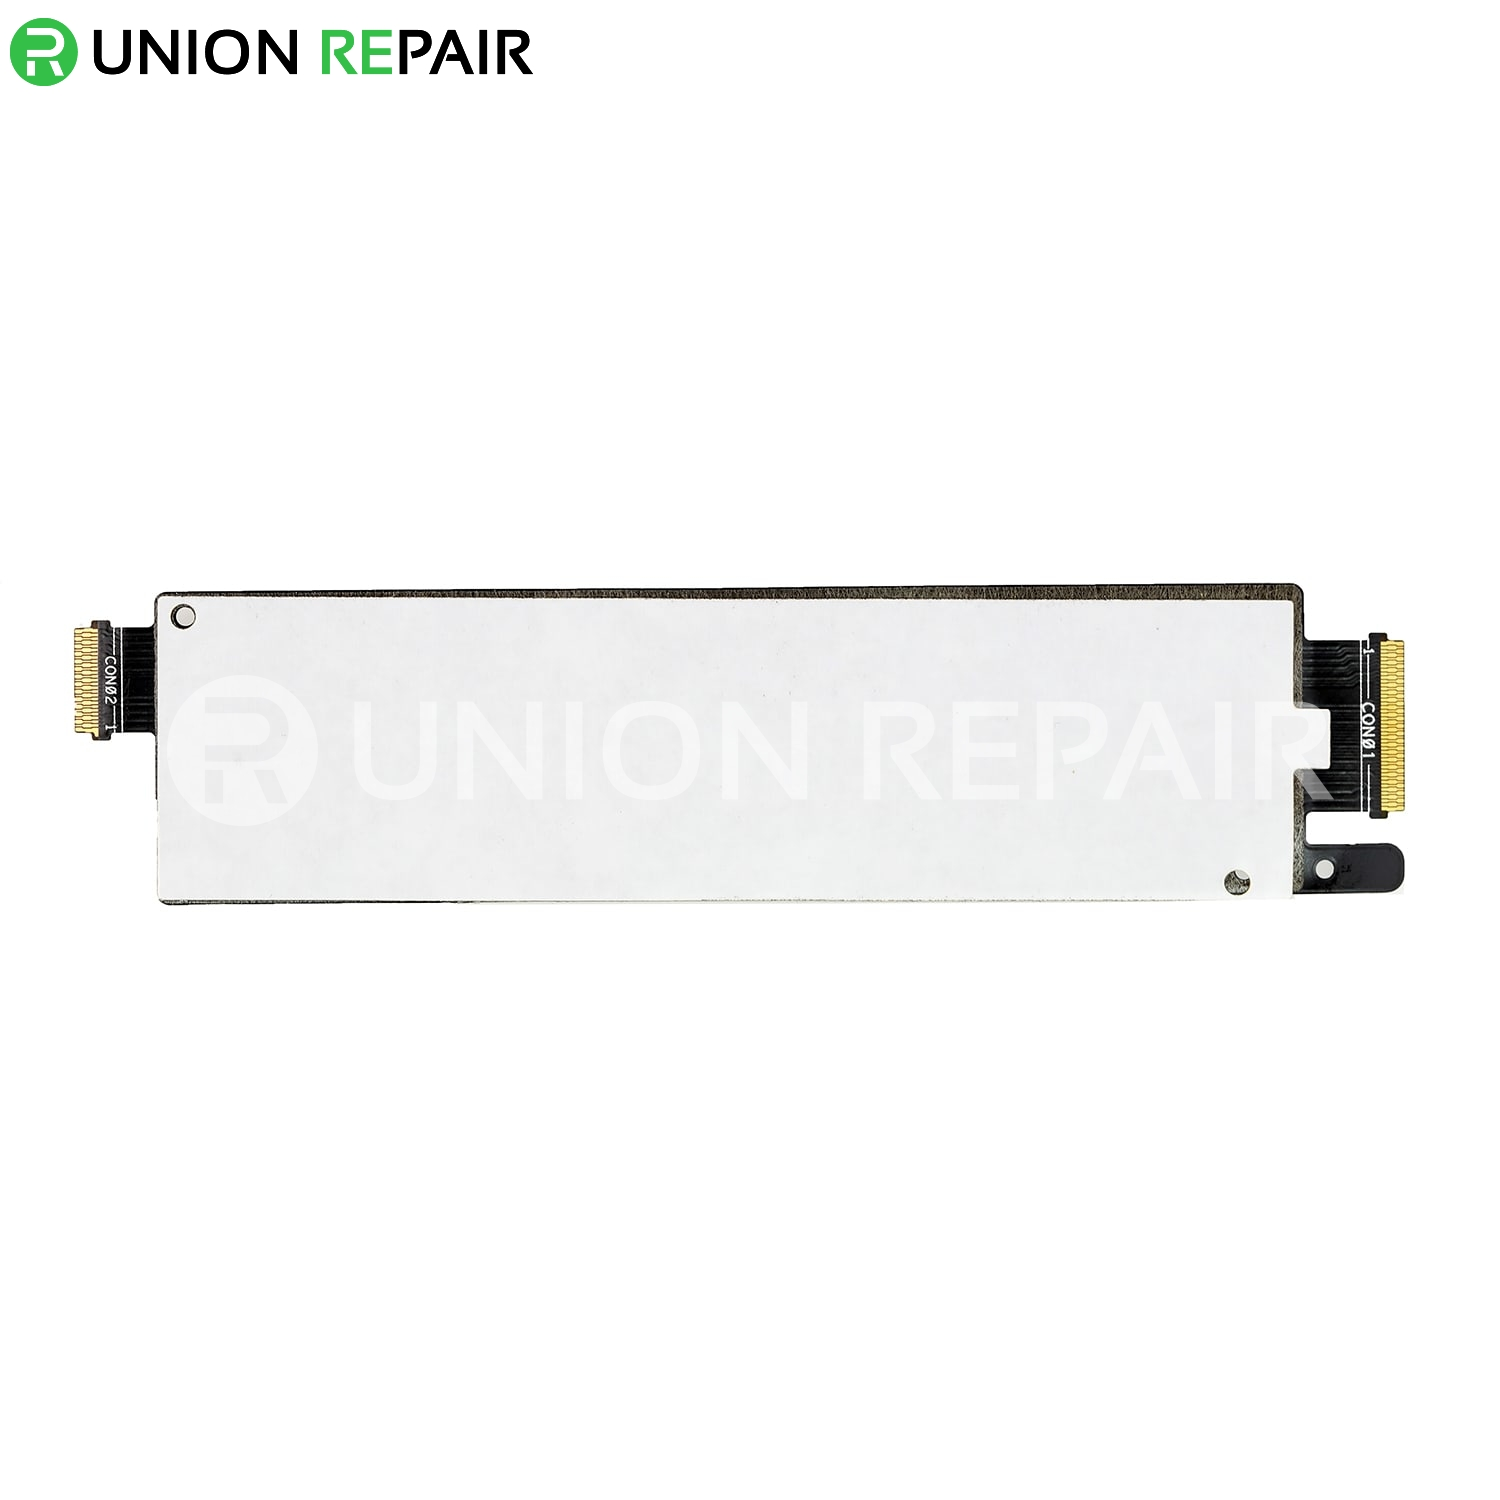 Replacement for Asus Zenfone 6 A600CG Dual Sim Card Slot